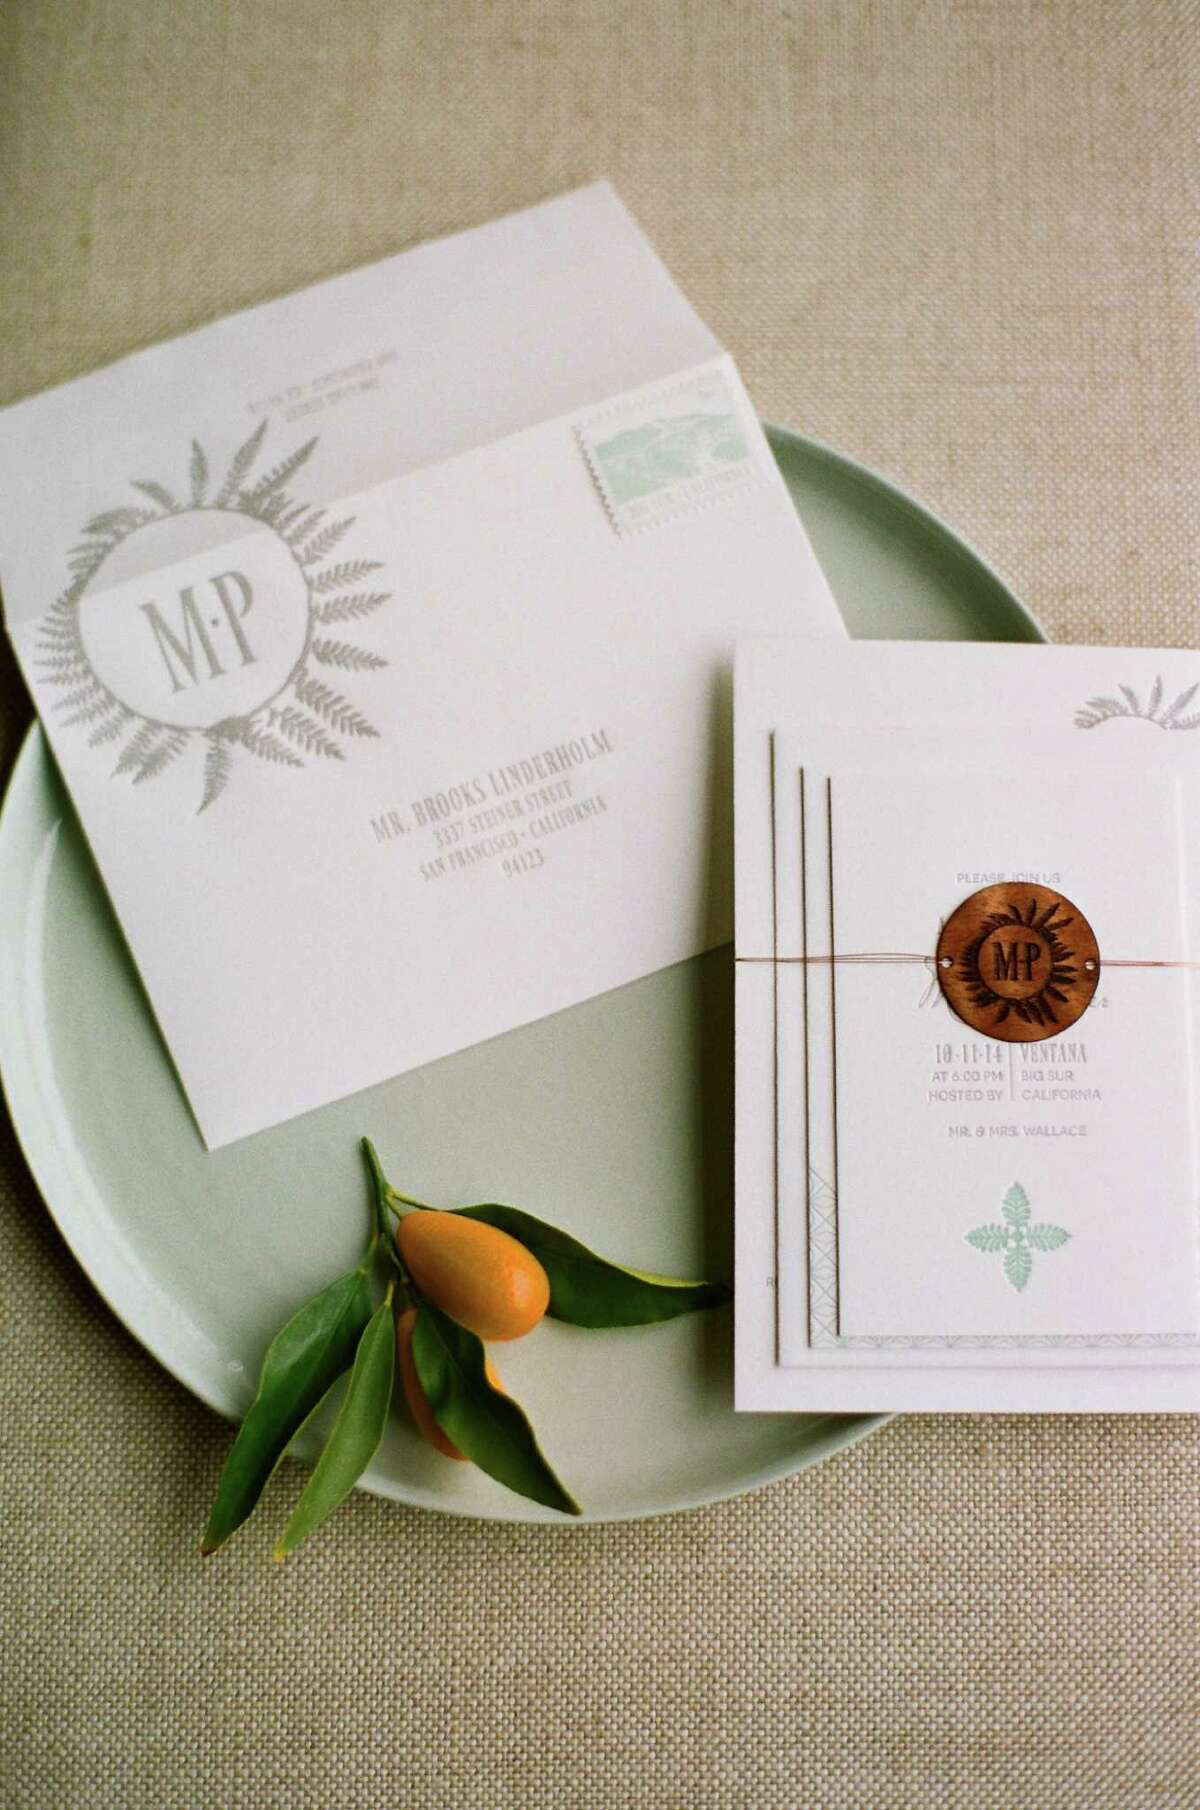 """An inviting brand Couples are using the visuals they develop for invitations and wedding collateral as personal branding elements, speaking to their heritage, relationship or venue. """"One client of ours was getting married under an oak tree. On the invite, we adhered a physical oak leaf that was dried and pressed,"""" says Julie Forsberg, co-owner of Yonder Design. Jill Velez, co-owner of Copper Willow Paper Studio, says icons like stylized personal crests can depict a blending of backgrounds and cultures. """"People really like having a defining image that they can relate to and is an expression of their personal style,"""" says Velez. Pictured: Wedding designs by Yonder Custom Event Design in San Francisco."""